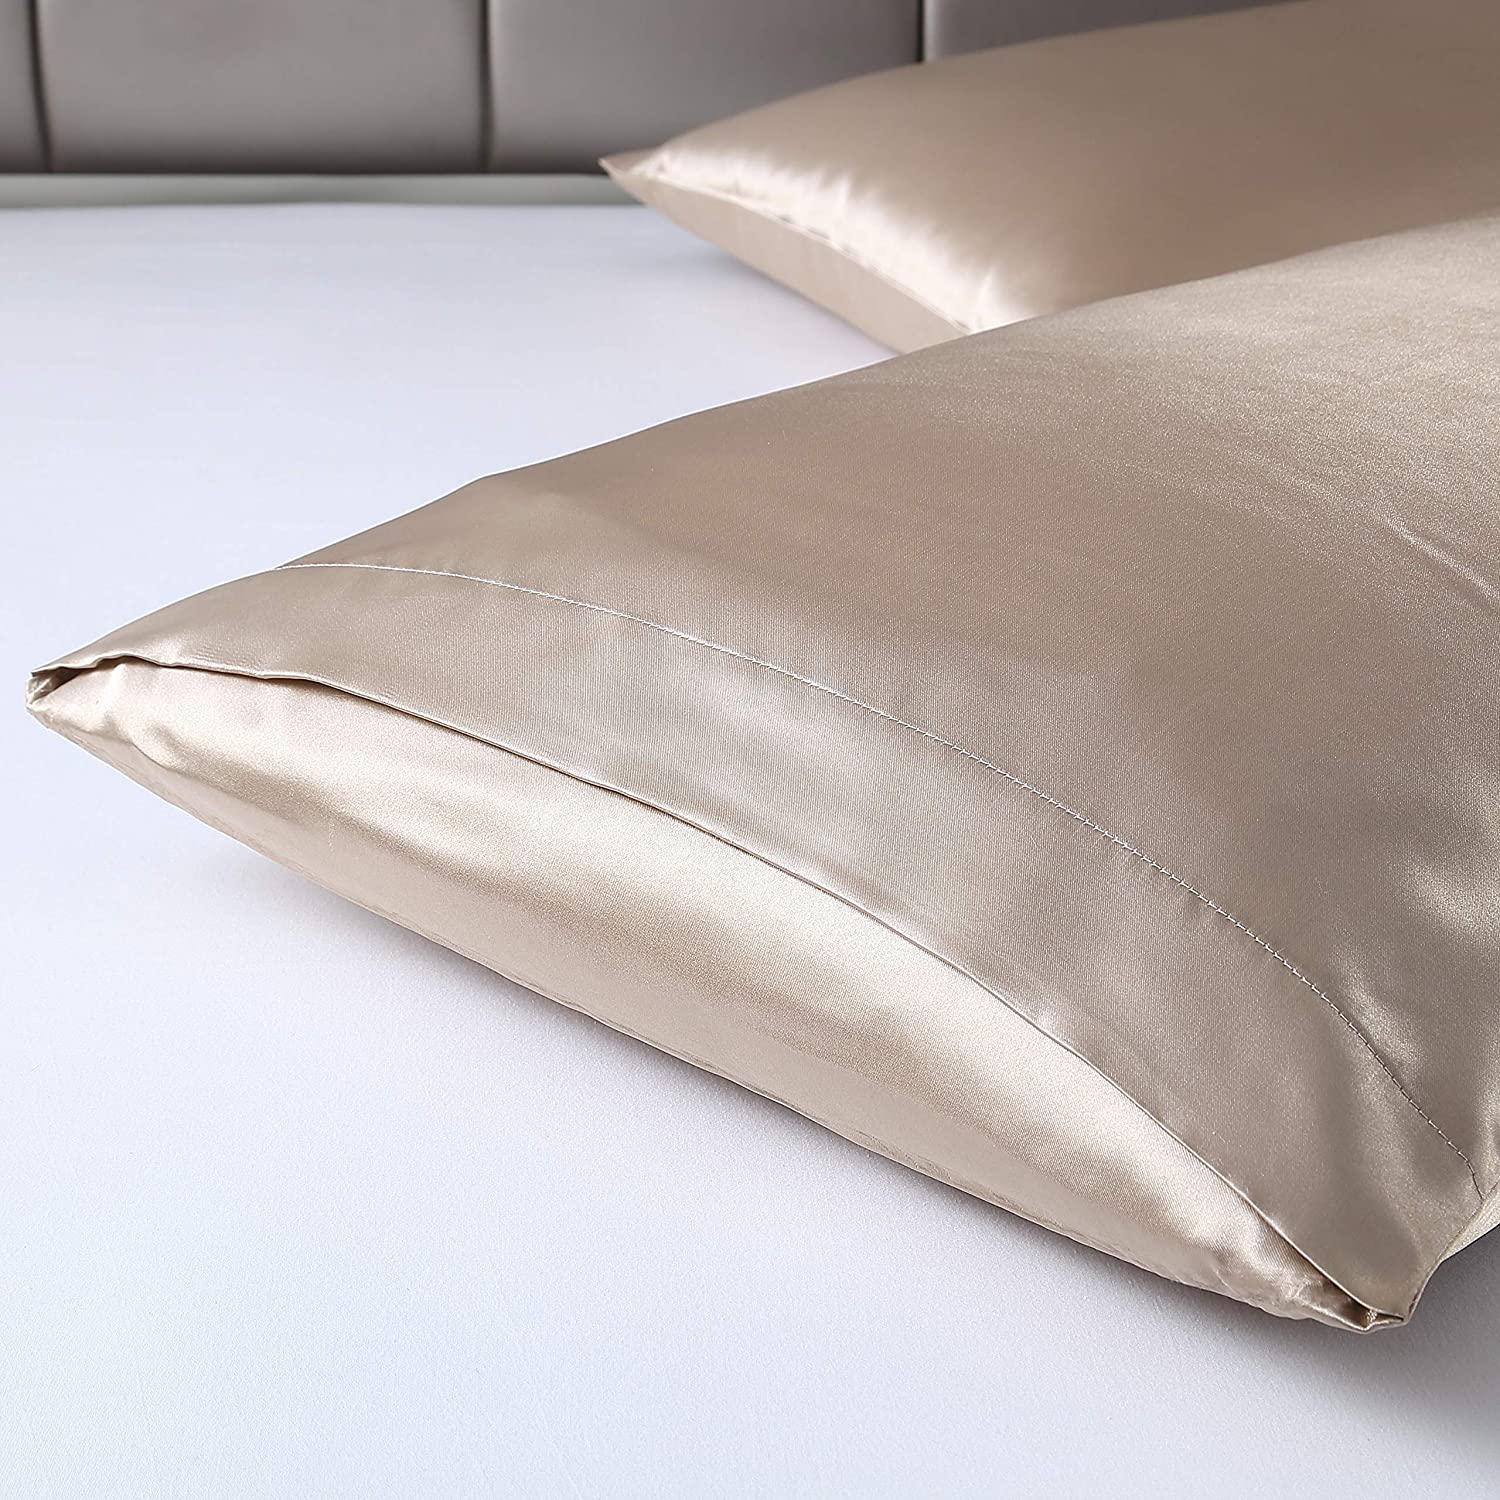 Lovescabin Two-Pack Satin Pillowcases Set for Hair and Skin Standard//Queen Size 20x30 Dark Grey Pillow Case with Envelope Closure Anti Wrinkle,Hypoallergenic,Wash-Resistant